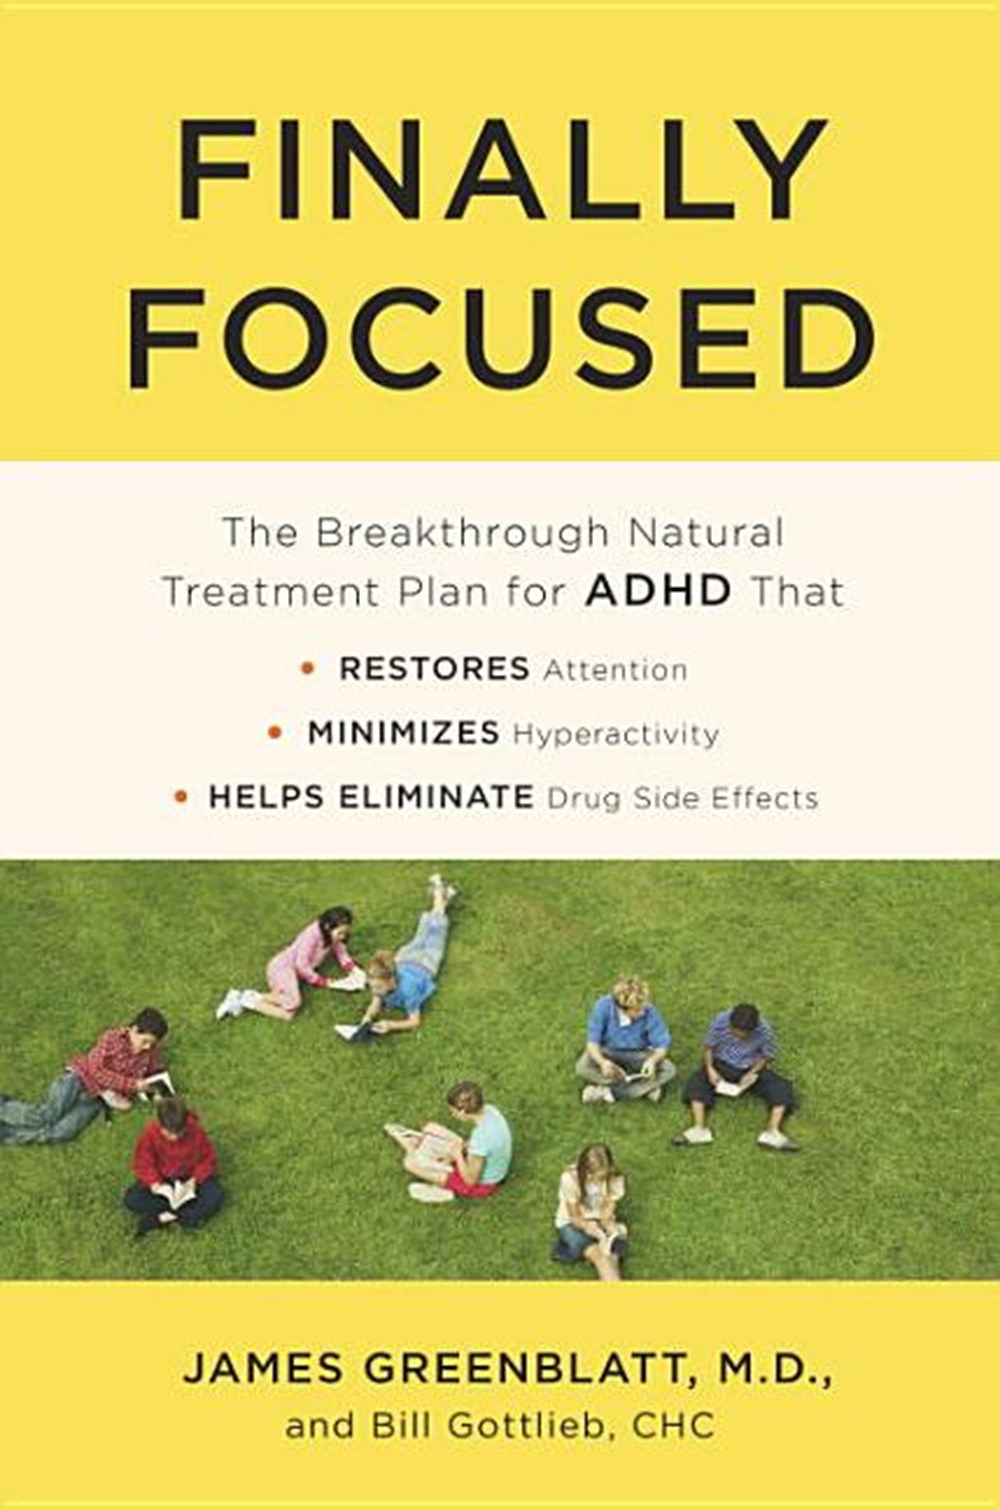 Finally Focused The Breakthrough Natural Treatment Plan for ADHD That Restores Attention, Minimizes